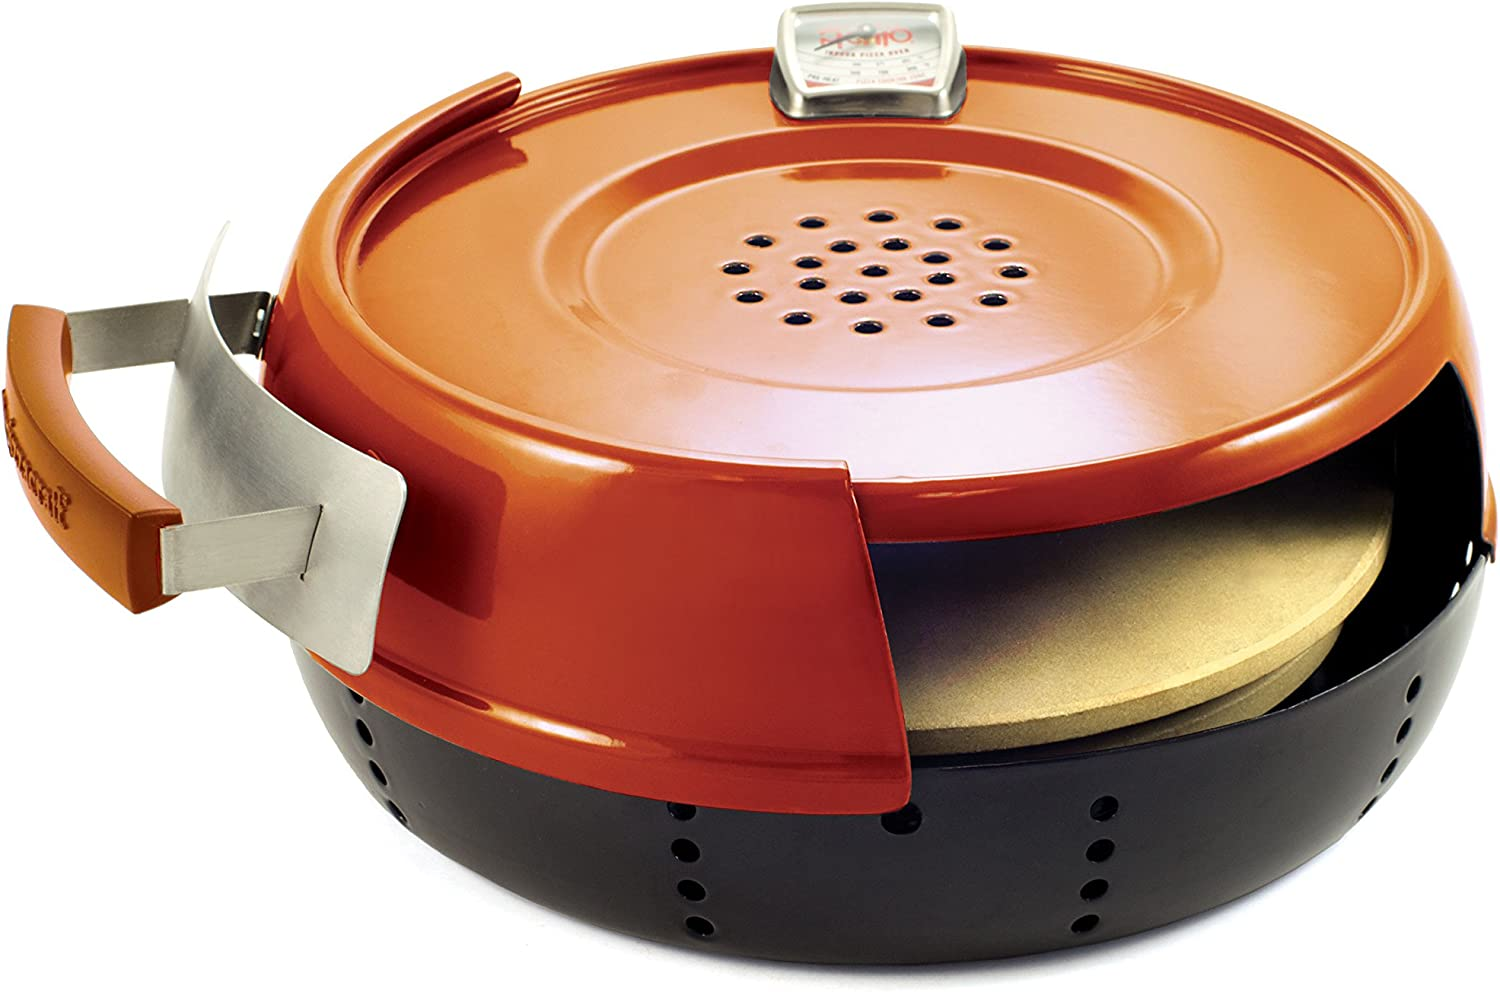 Pizzacraft All stores are sold PC0601 Pizzeria Pronto Pizza Oven Product Stovetop